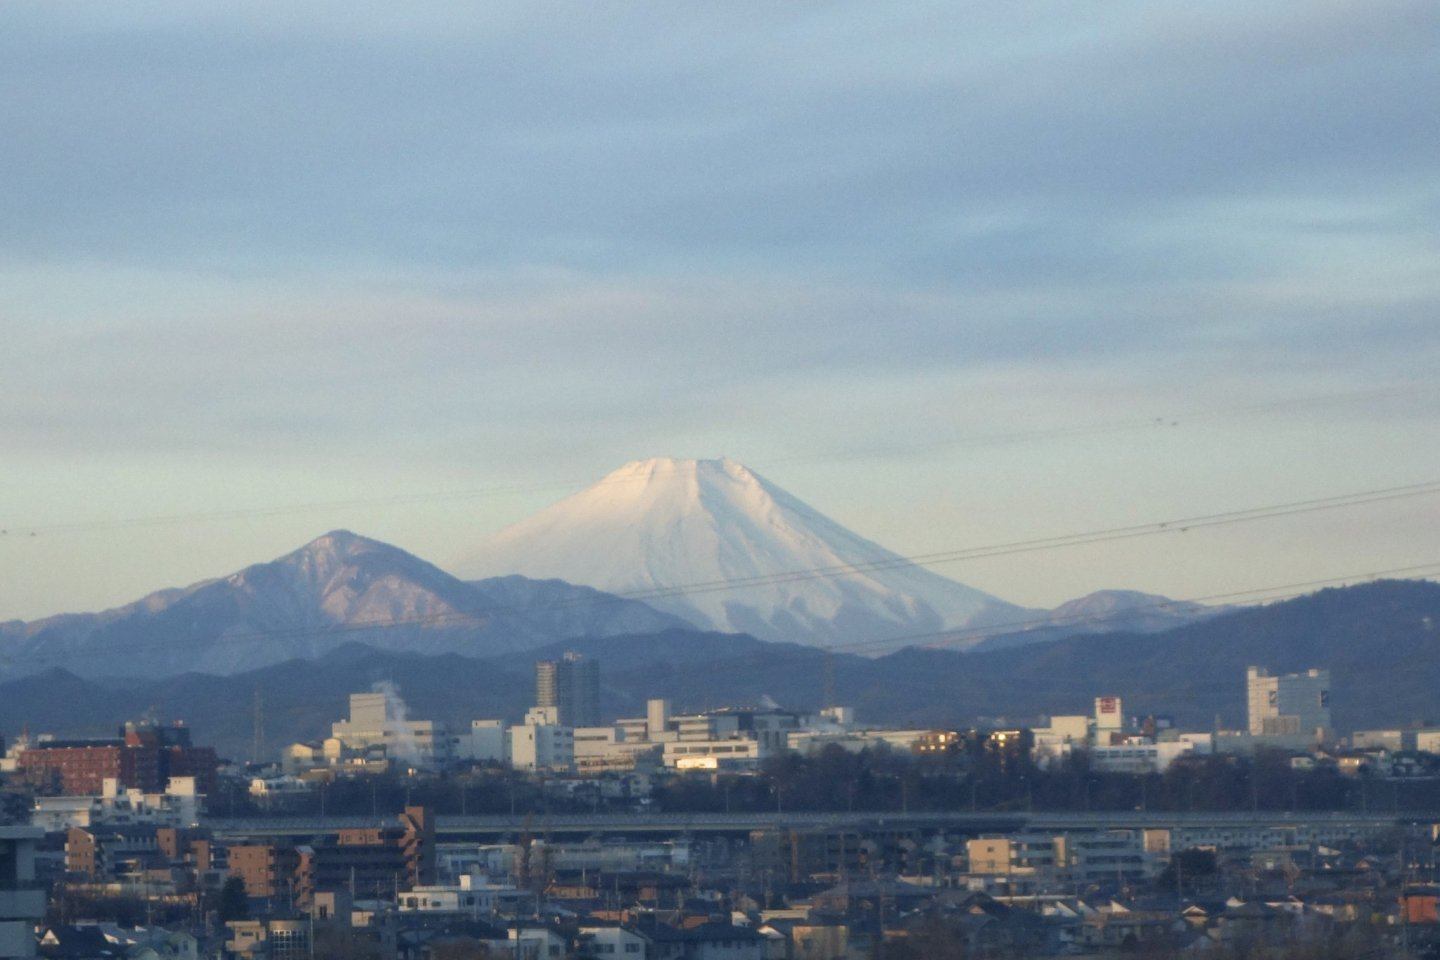 Japan\'s symbol blends quietly into the background of the cement jungle